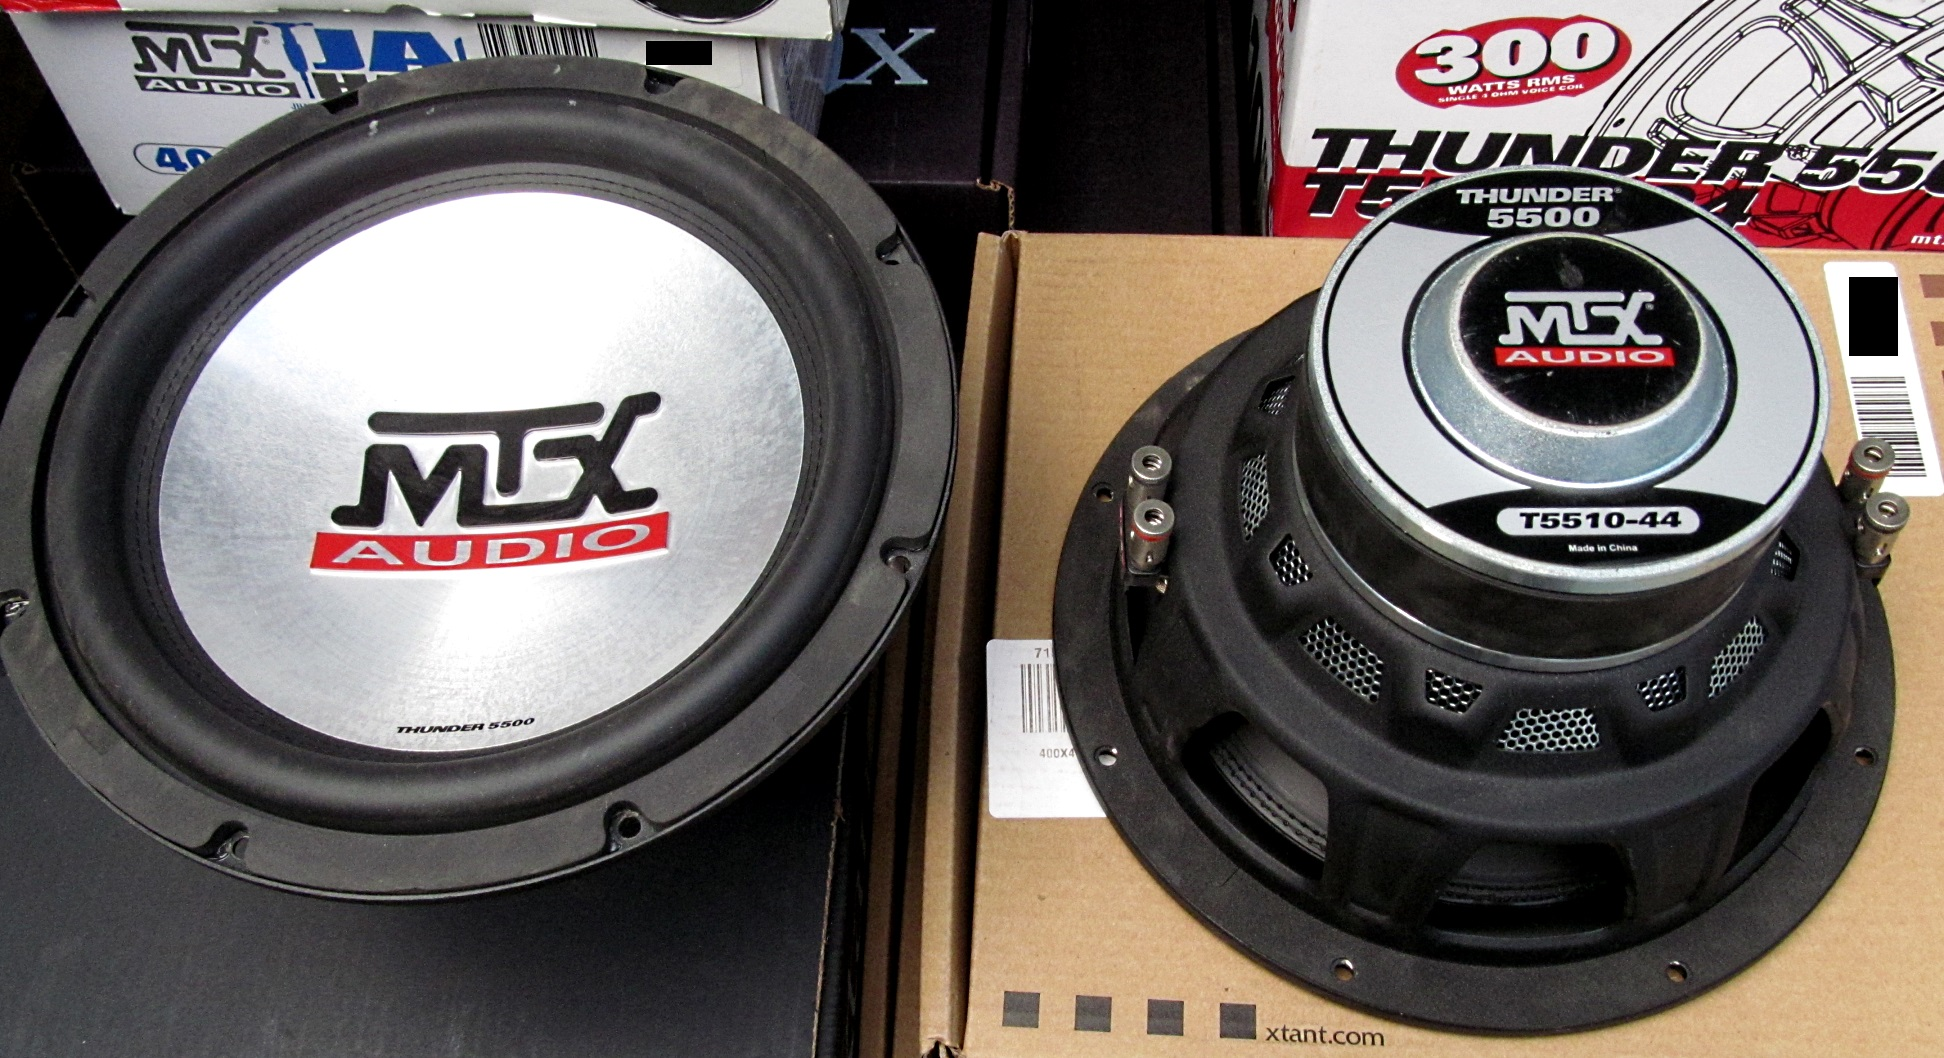 Mtx 10 round car audio subwoofer tr5510 44 mtx 10 round car audio subwoofer publicscrutiny Images